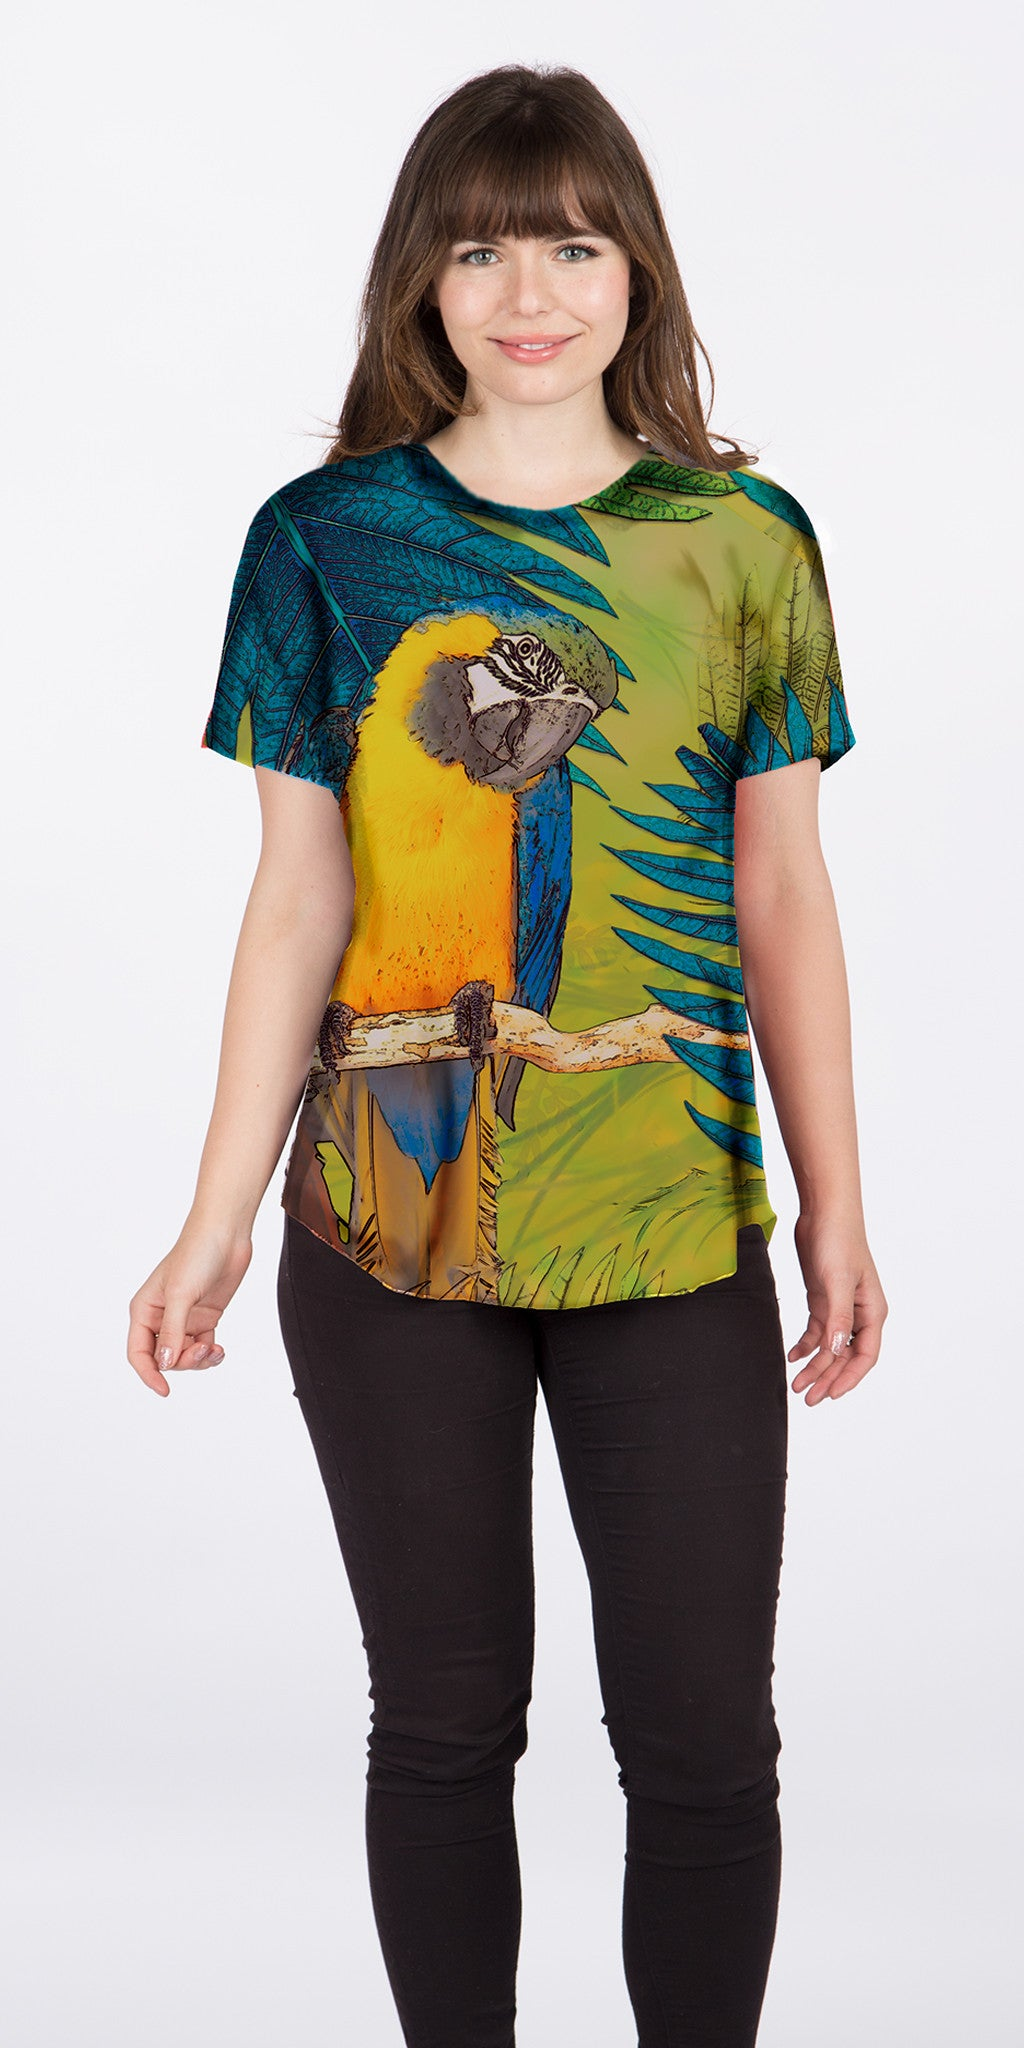 Parrot - Artistic Tee for Women